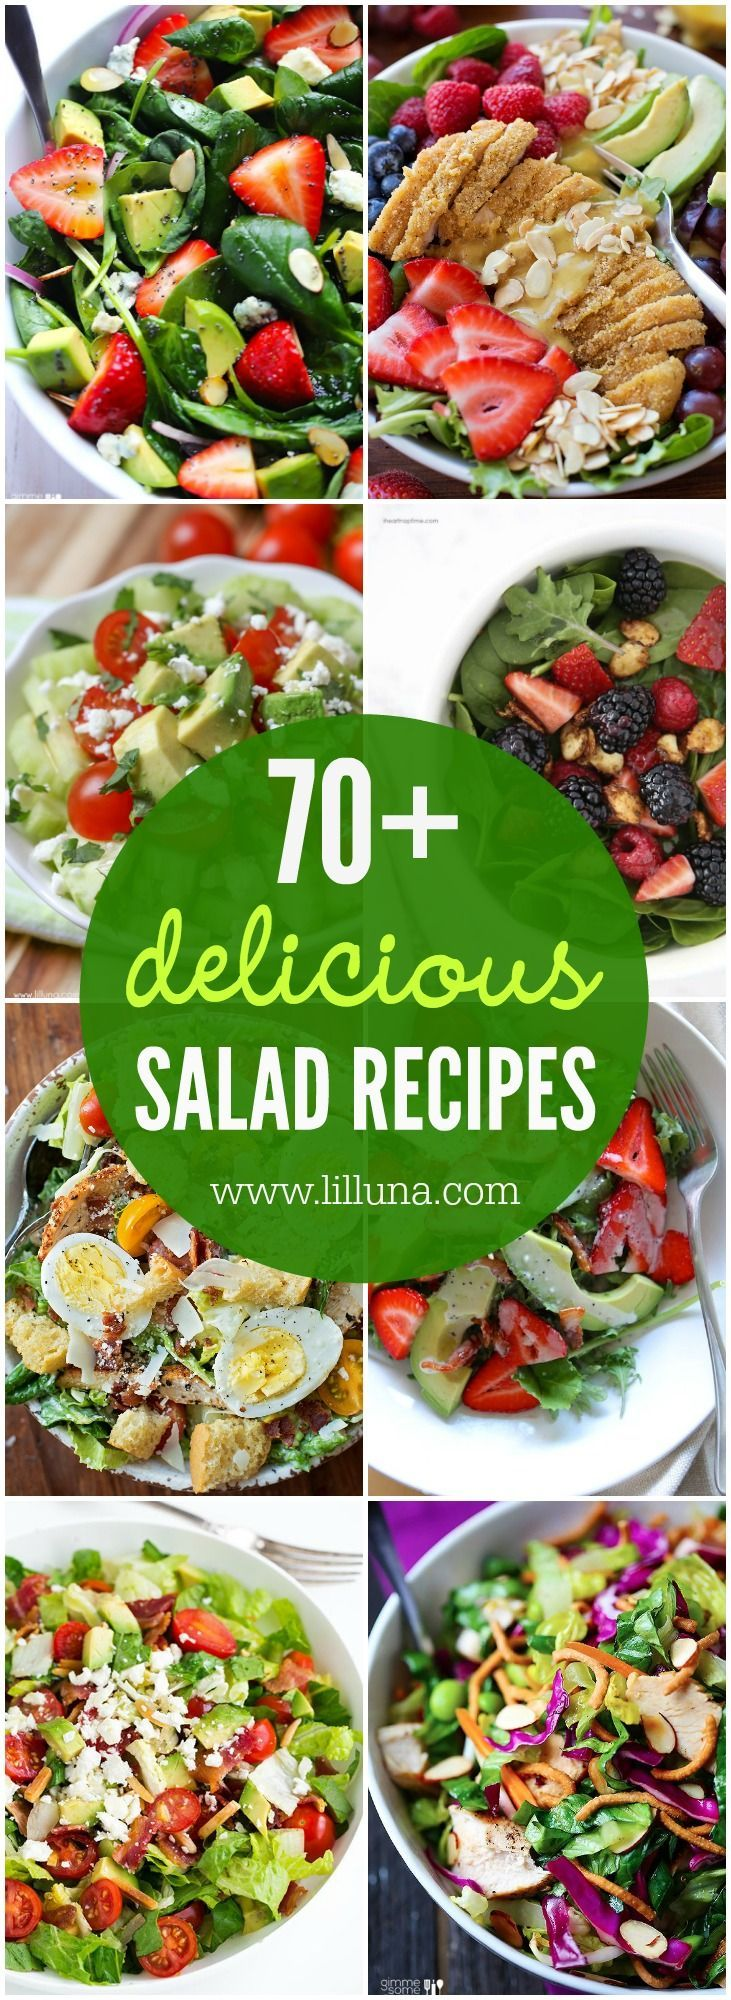 A delicious and huge collection of the BEST salad recipes on the web. From sweet to savory, there are so many options to choose from!